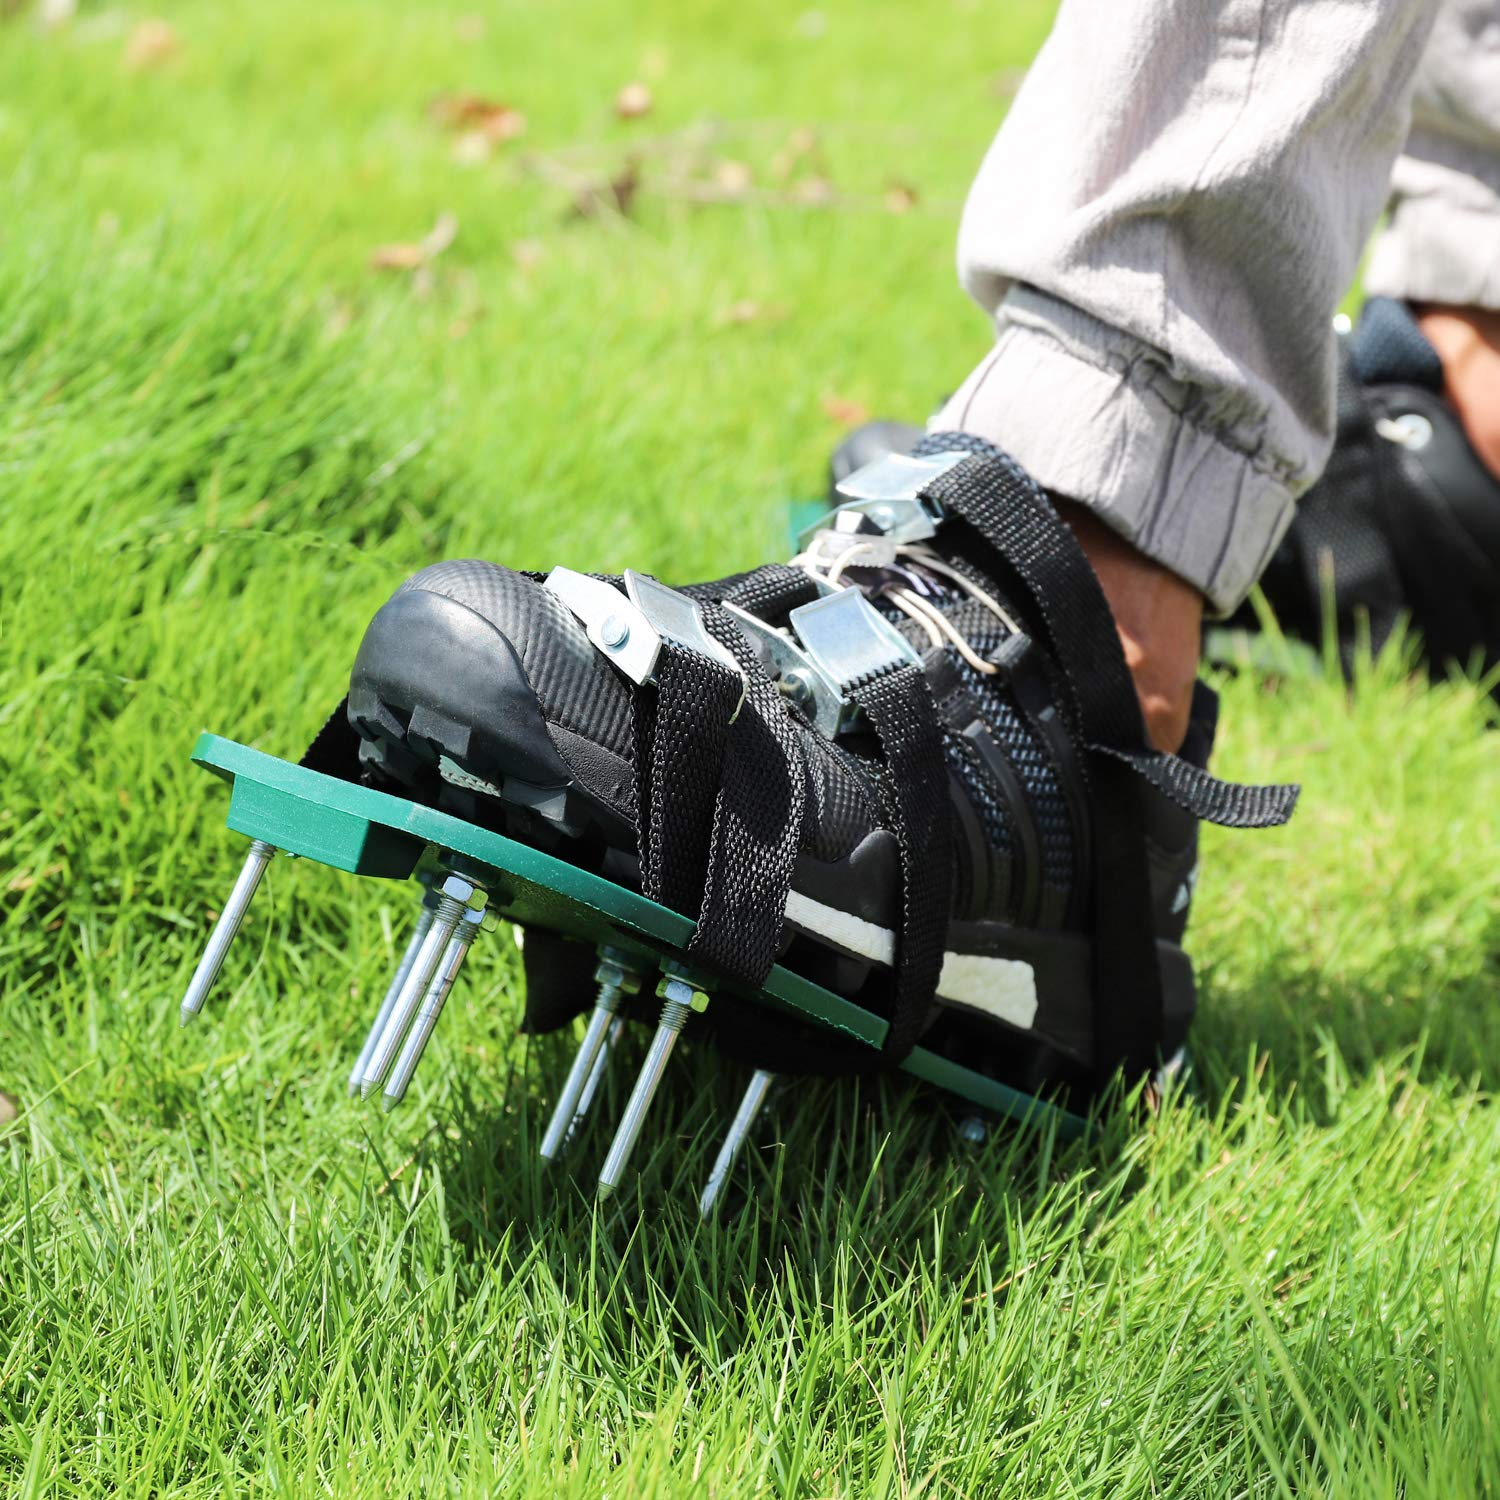 Wistar Lawn Aerator Shoes Metal Buckles and 3 Straps Heavy Duty Spiked Sandals for Aerating Your Lawn or Yard Universal Size That Fits All